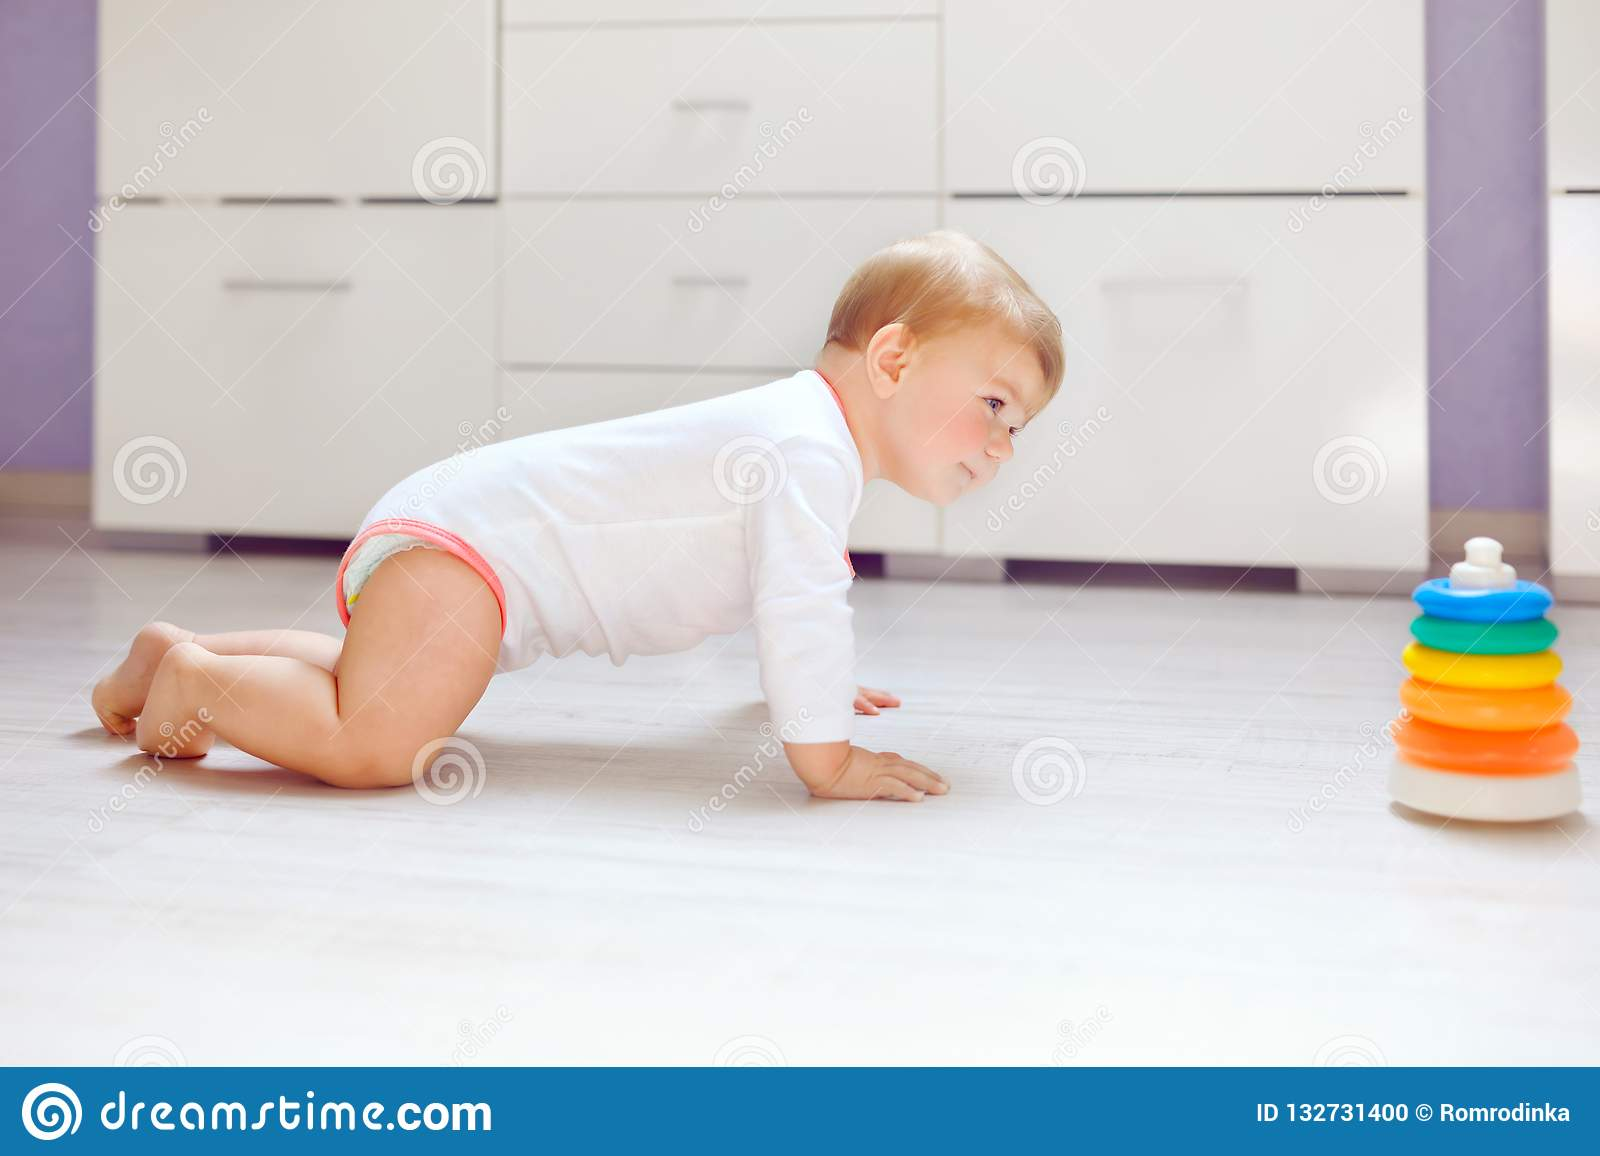 Little cute baby girl learning to crawl. Healthy child crawling in kids room. Smiling happy healthy toddler girl. Cute